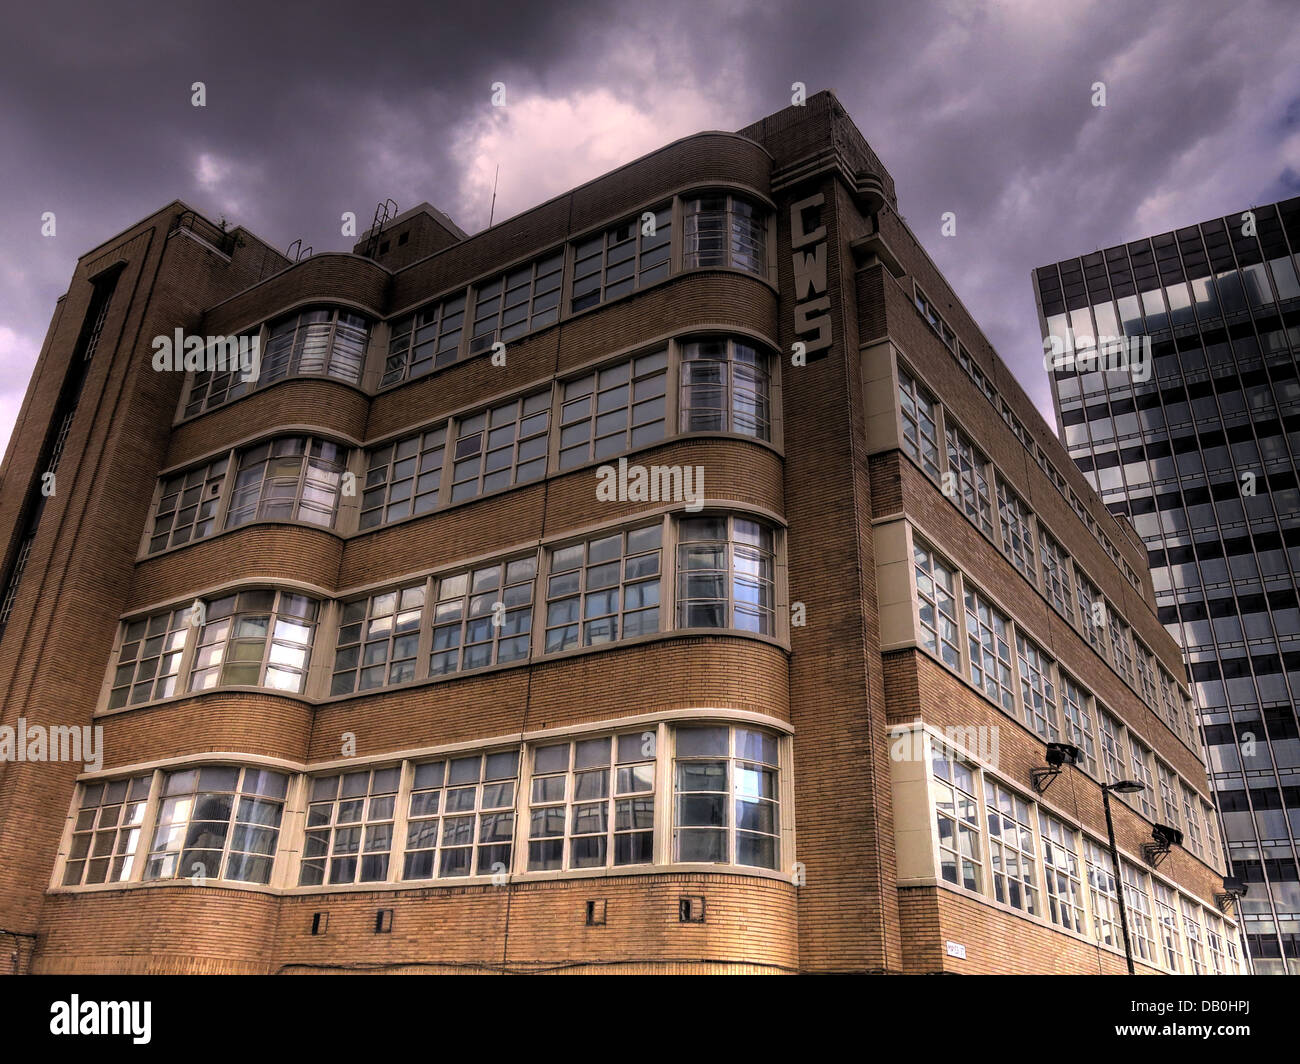 The 1920s style CWS building with stormy sky - Stock Image